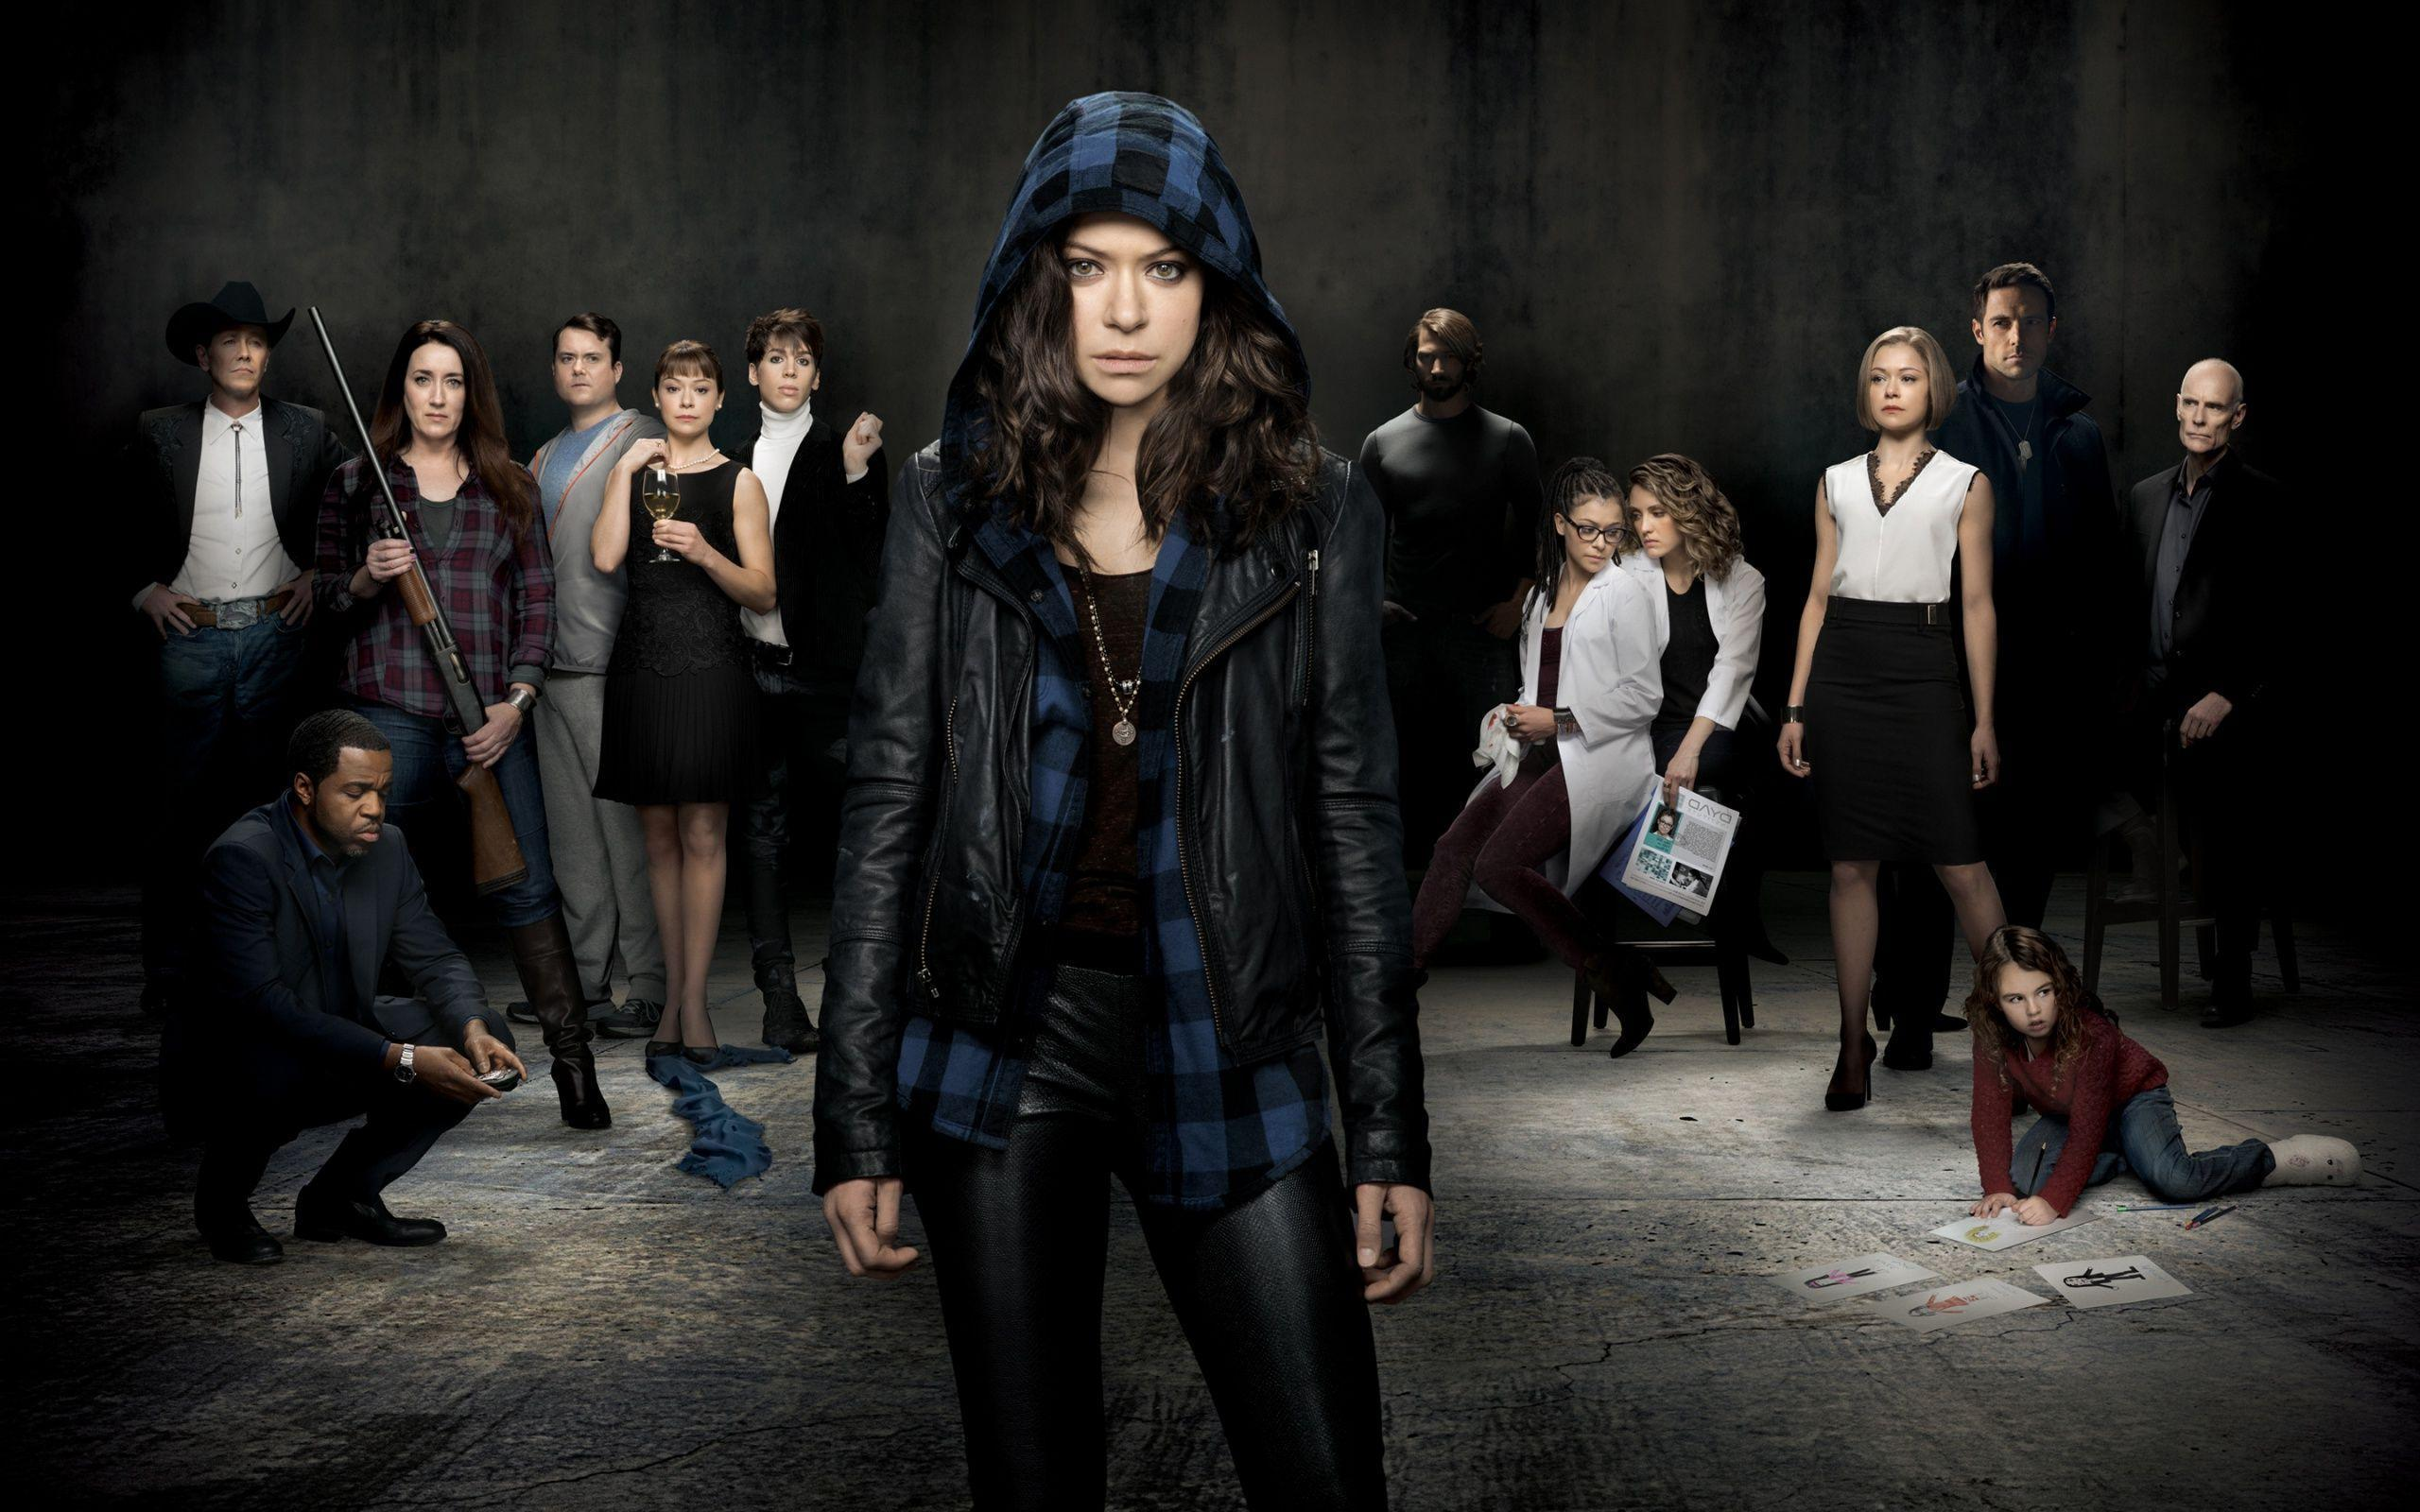 JUJ-993: Orphan Black Wallpapers, Pictures of Orphan Black High ...